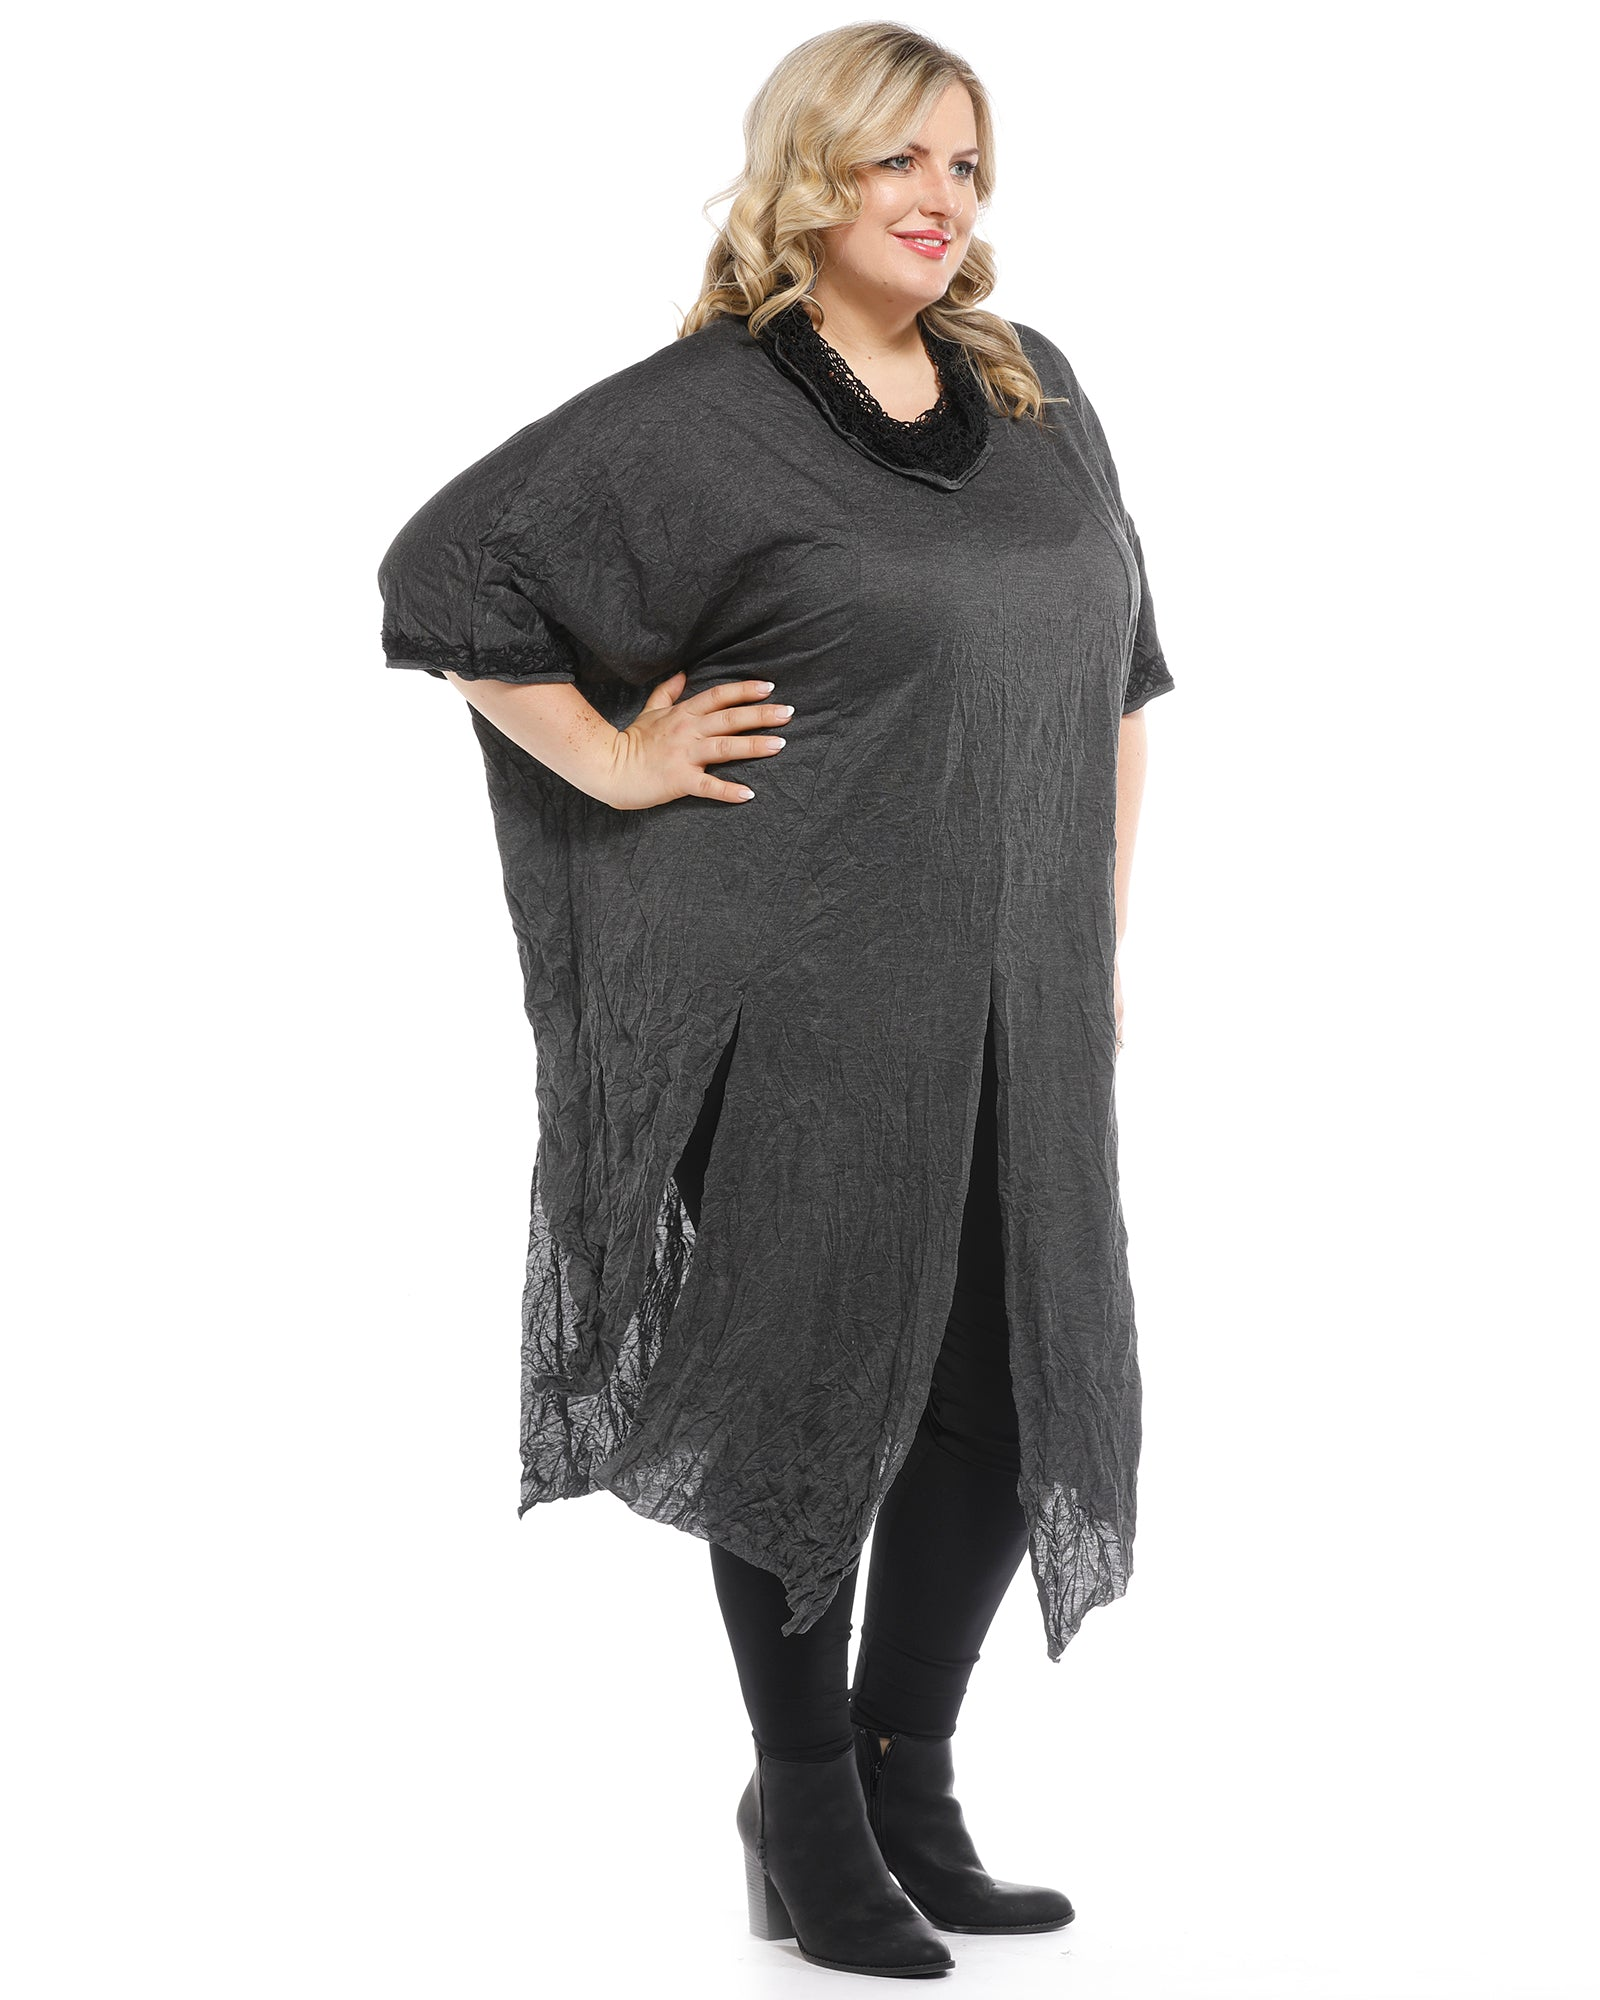 Charcoal Tunic Top - Last Sizes  18 & 22